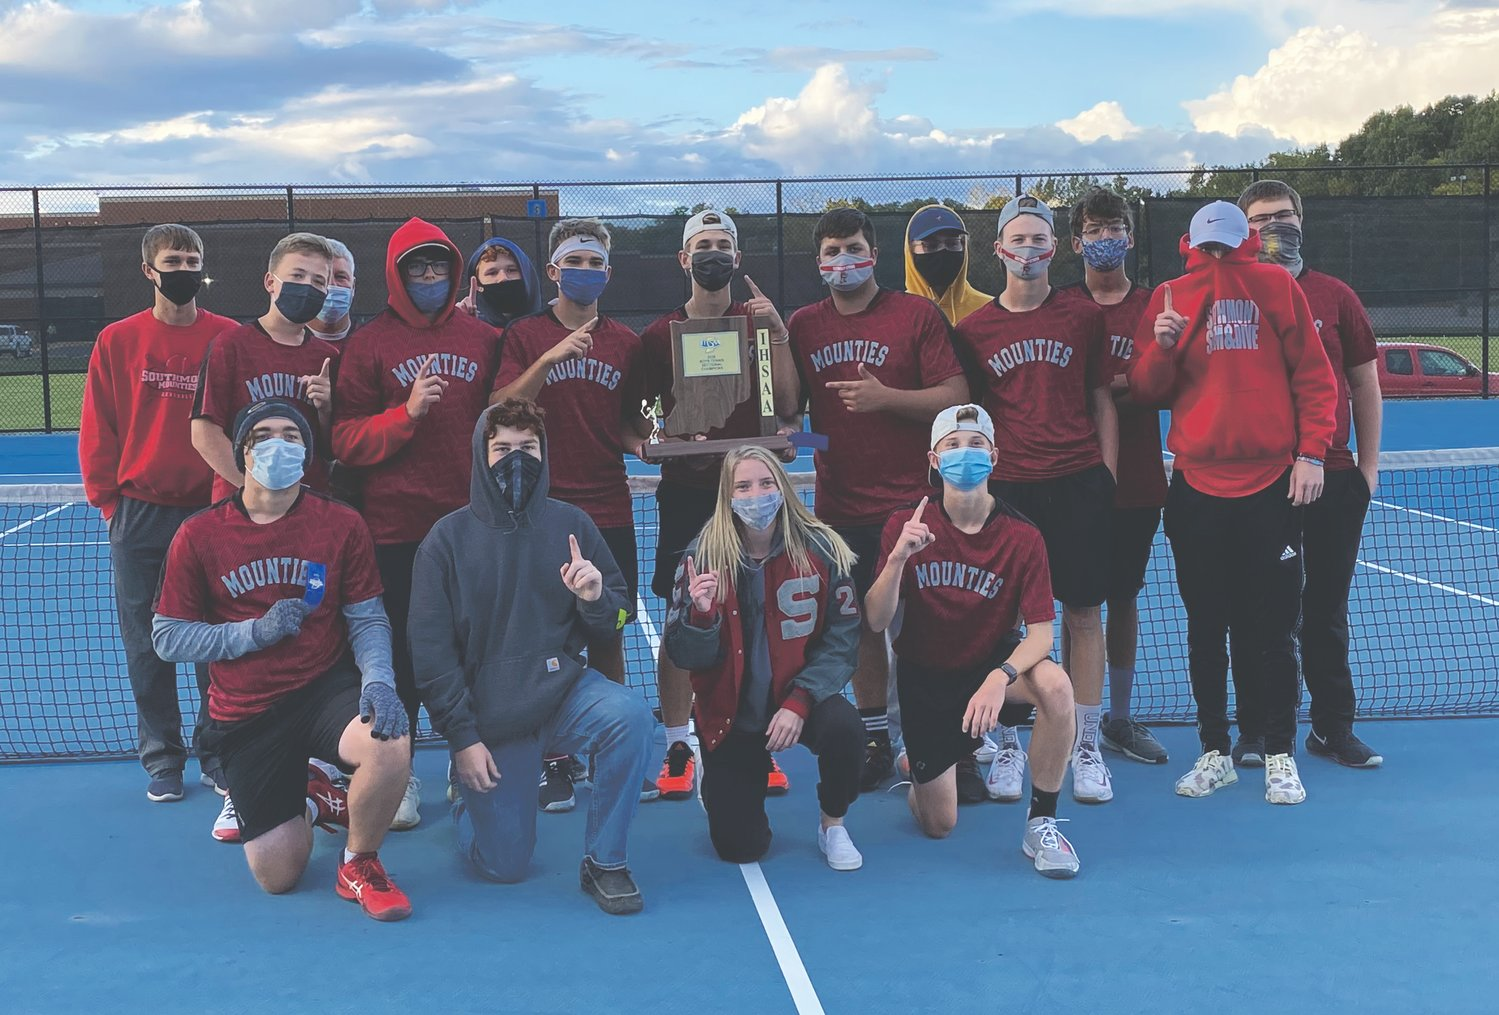 Southmont boys' tennis claimed its second straight sectional title with a 4-1 win over Crawfordsville on Thursday.